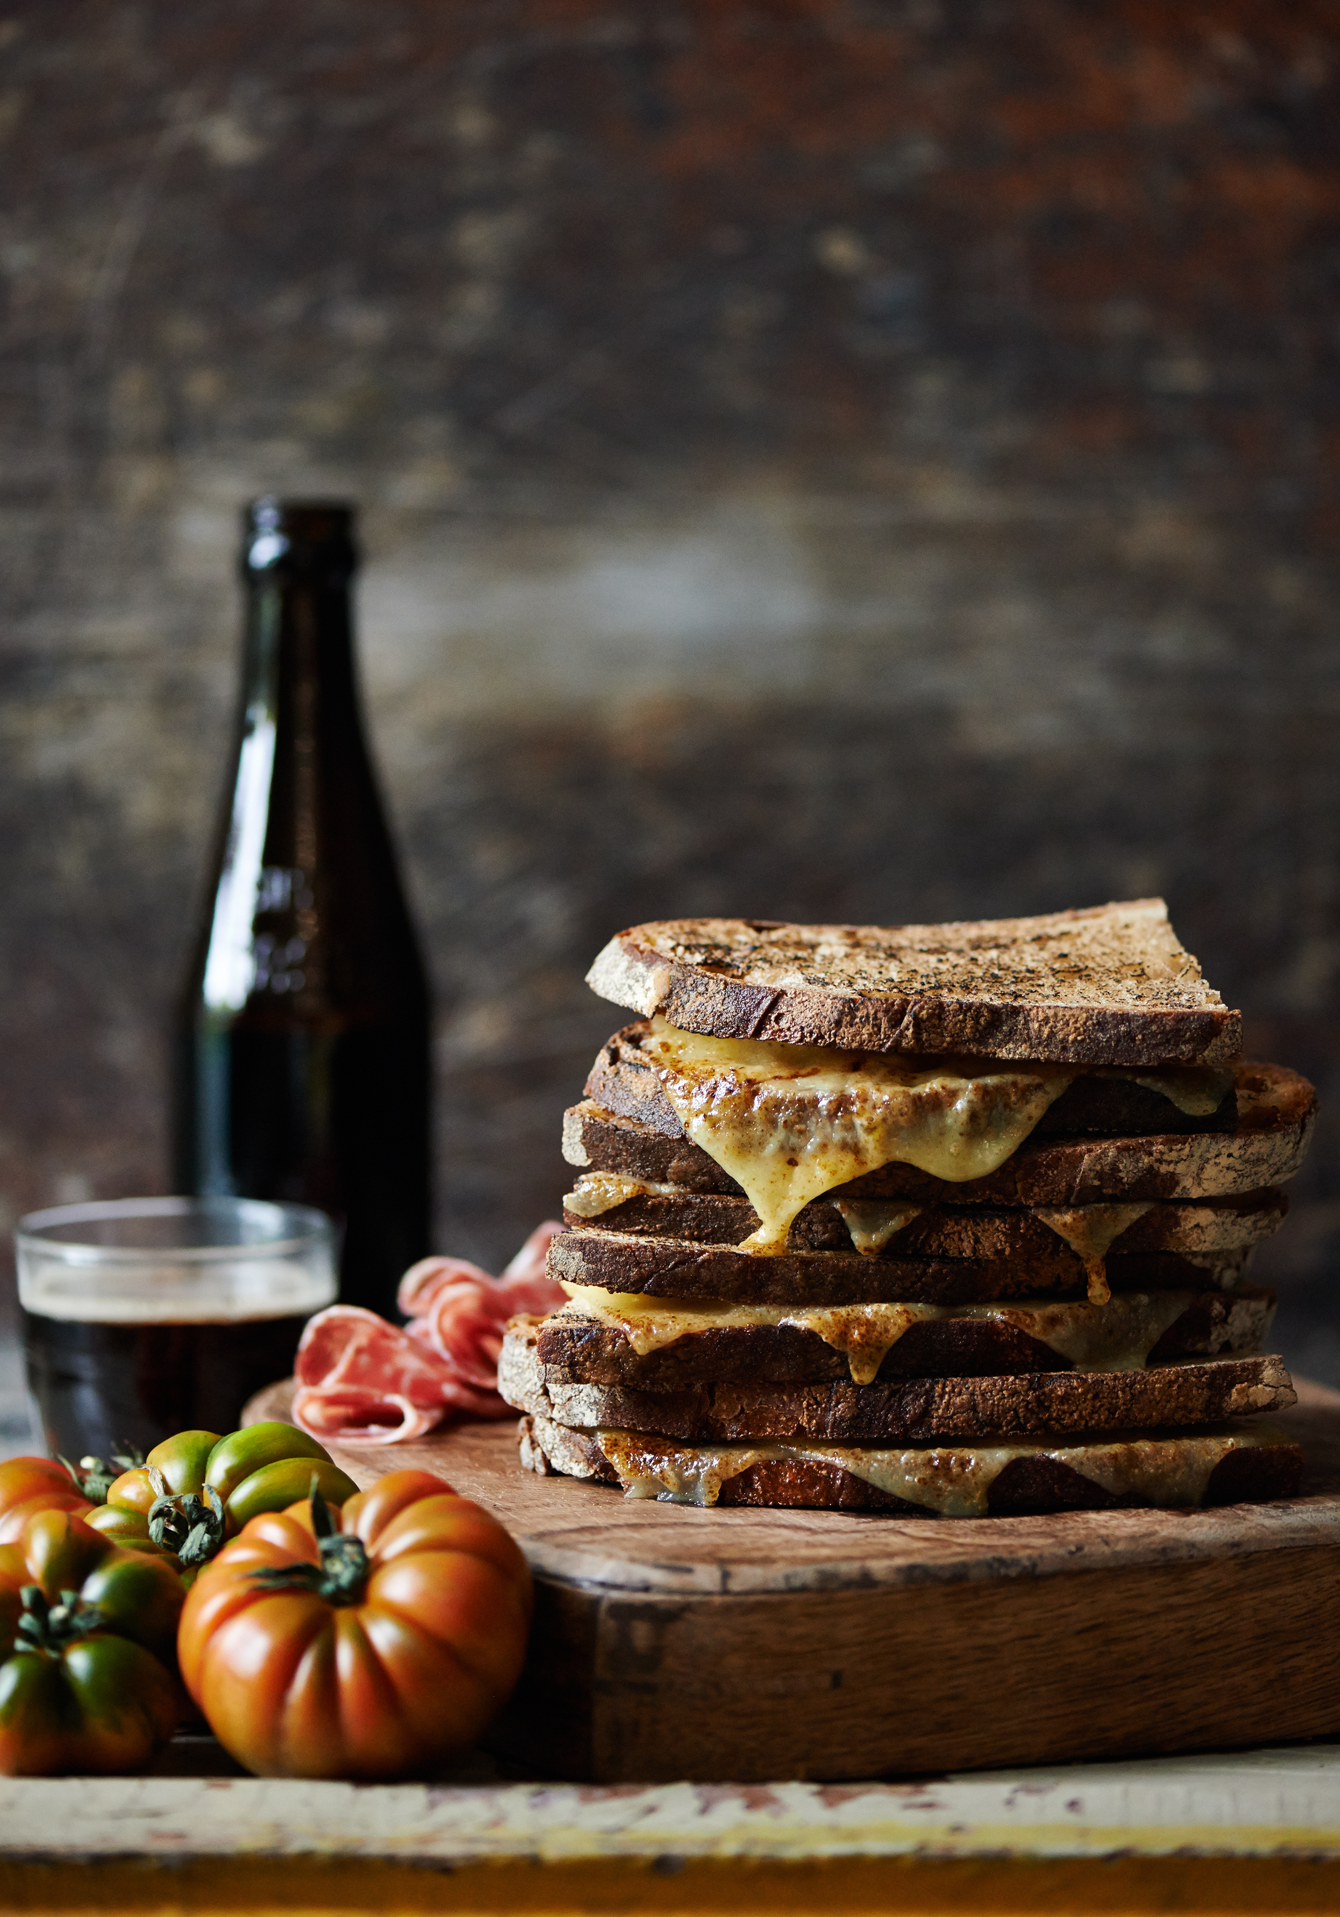 dark food photography of a grilled cheese sandwich